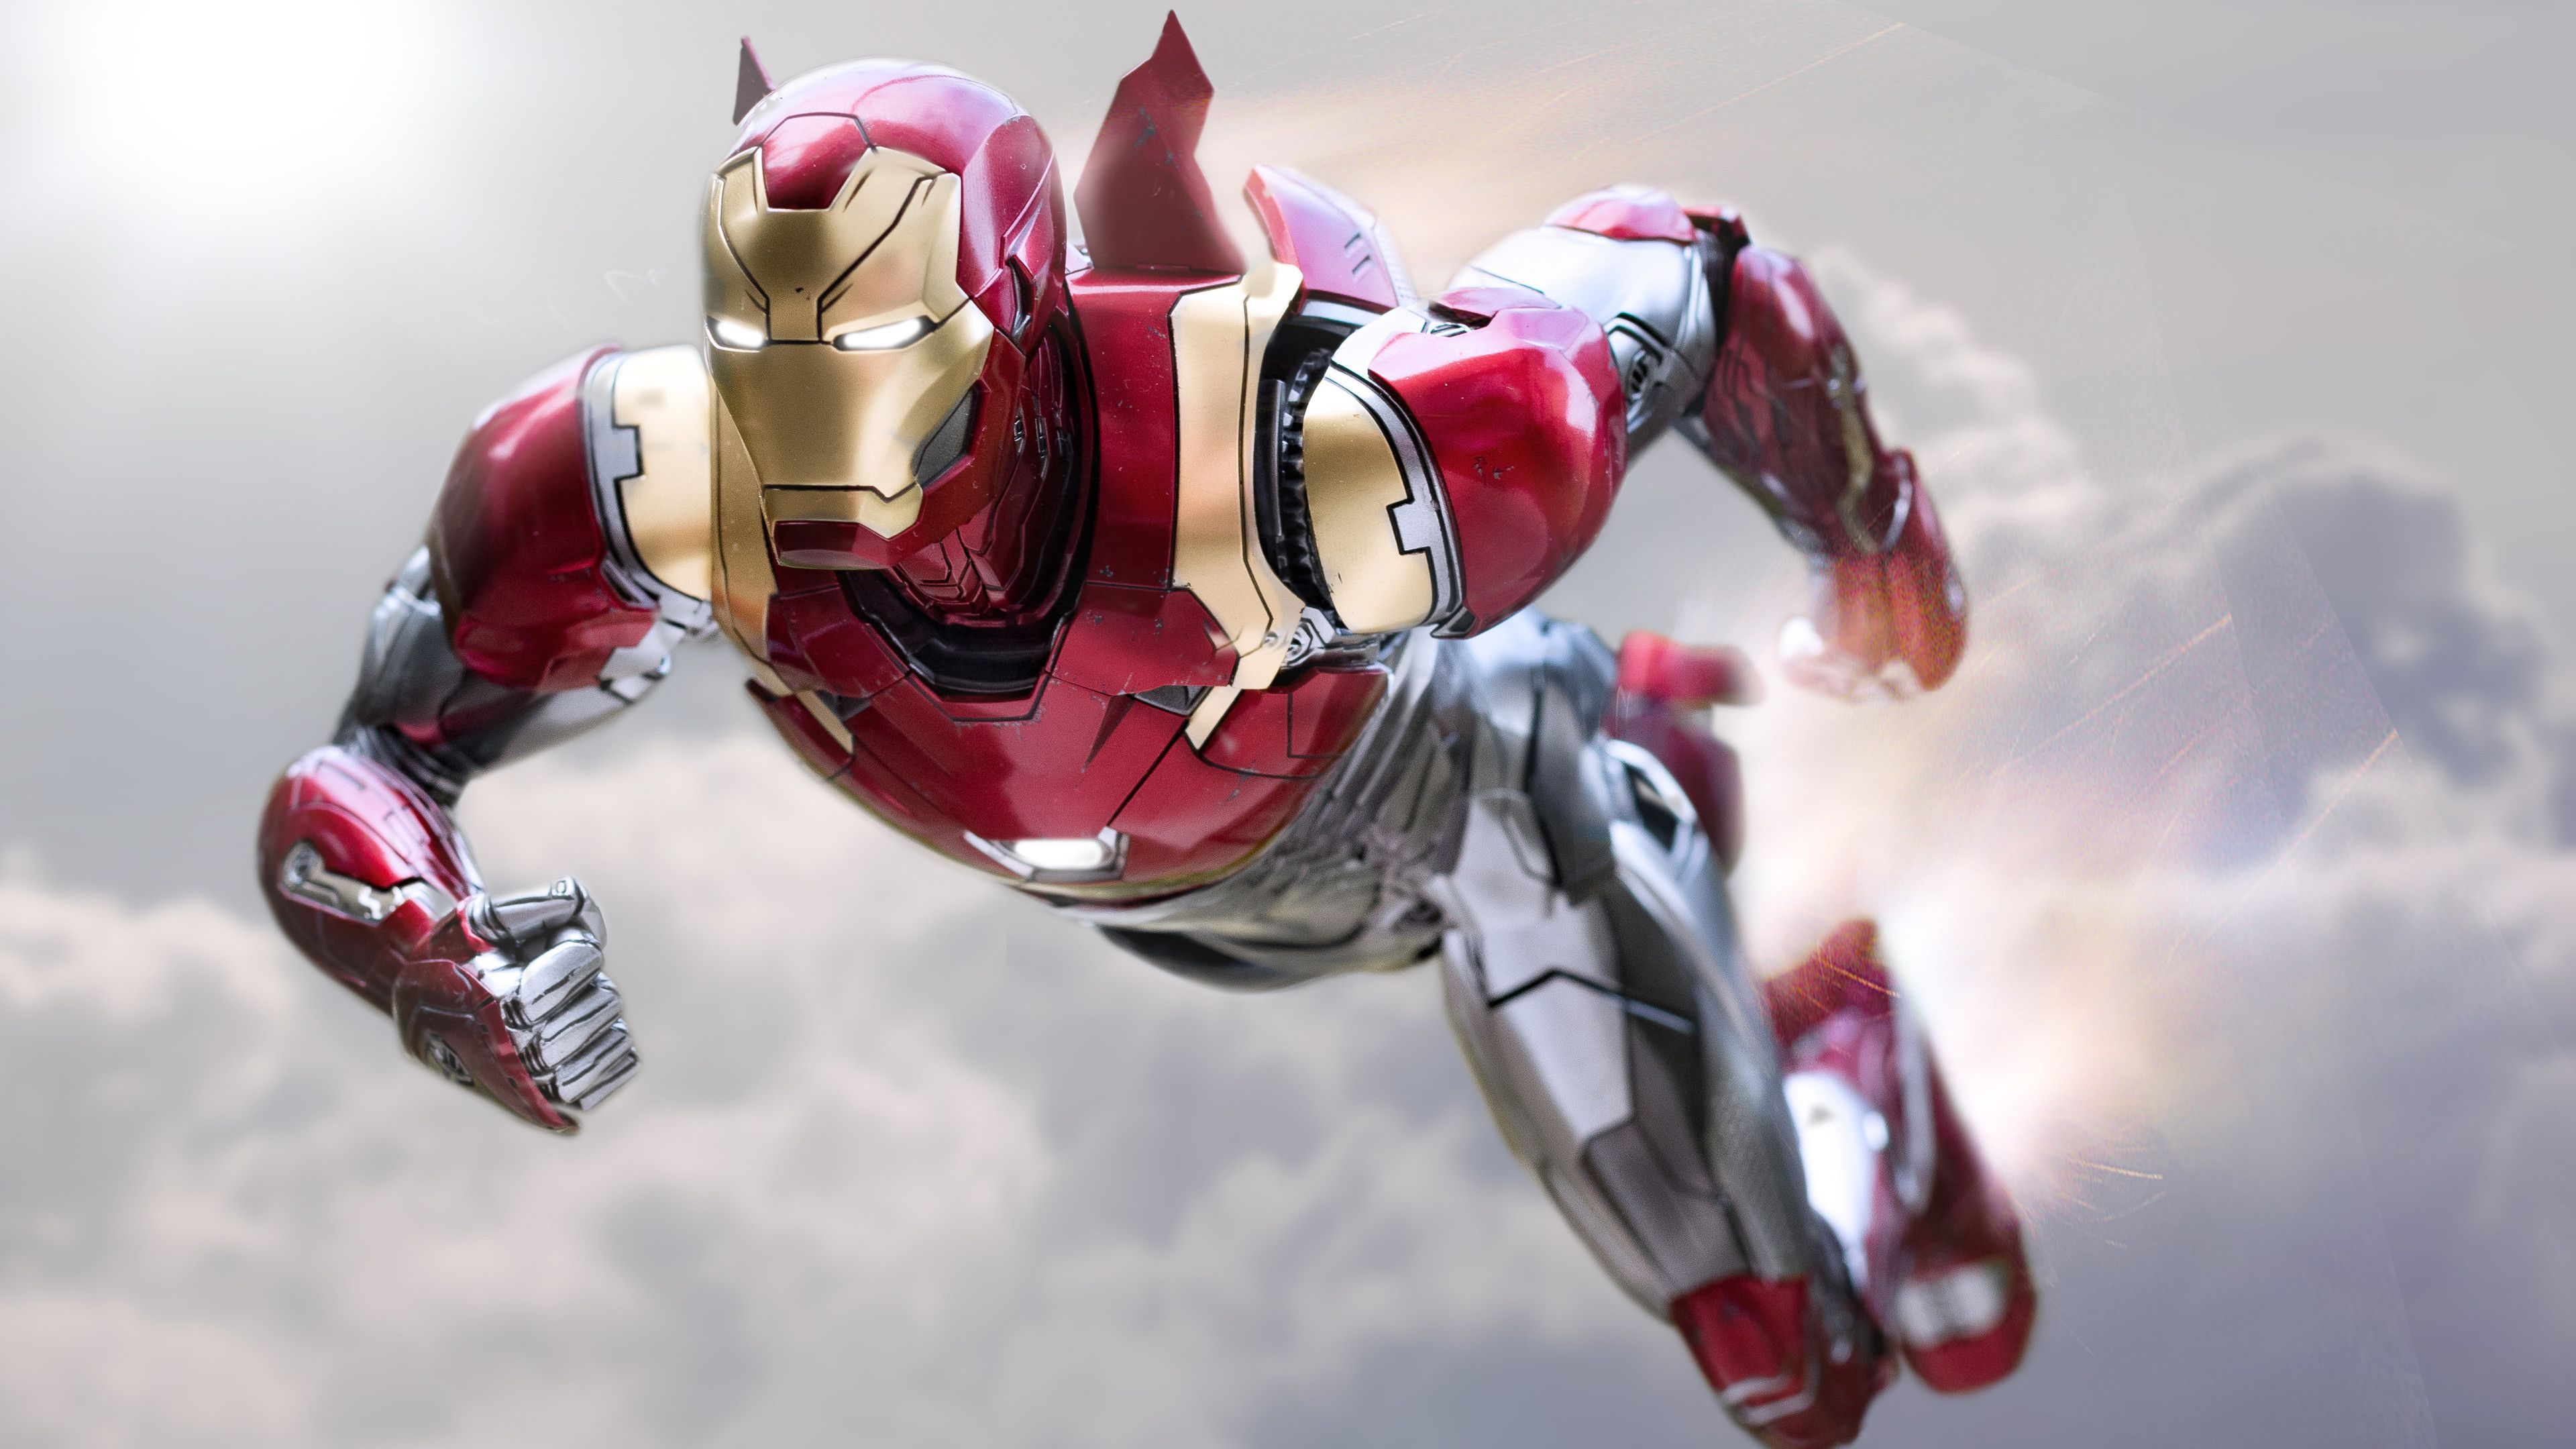 Iron Man Artwork 4k Wallpapers: Iron Man 4k New Superheroes Wallpapers, Iron Man